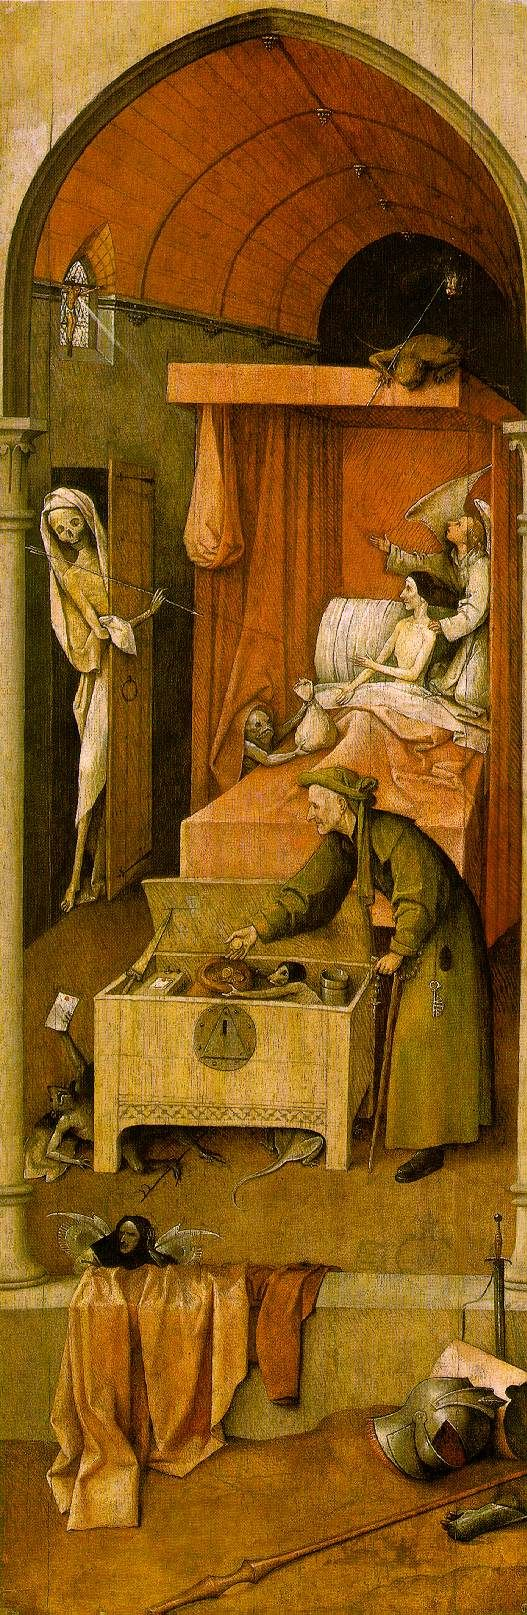 """Death and the Miser"" By Hieronymus Bosch (c. 1490). Oil on wood; National Gallery of Art, Washington, DC, USA  A moral tale -Bosch's panel painting, ""Death and the Miser"", serves as a warning to anyone who has grabbed at life's pleasures, without being sufficiently detached, and who is unprepared to die."